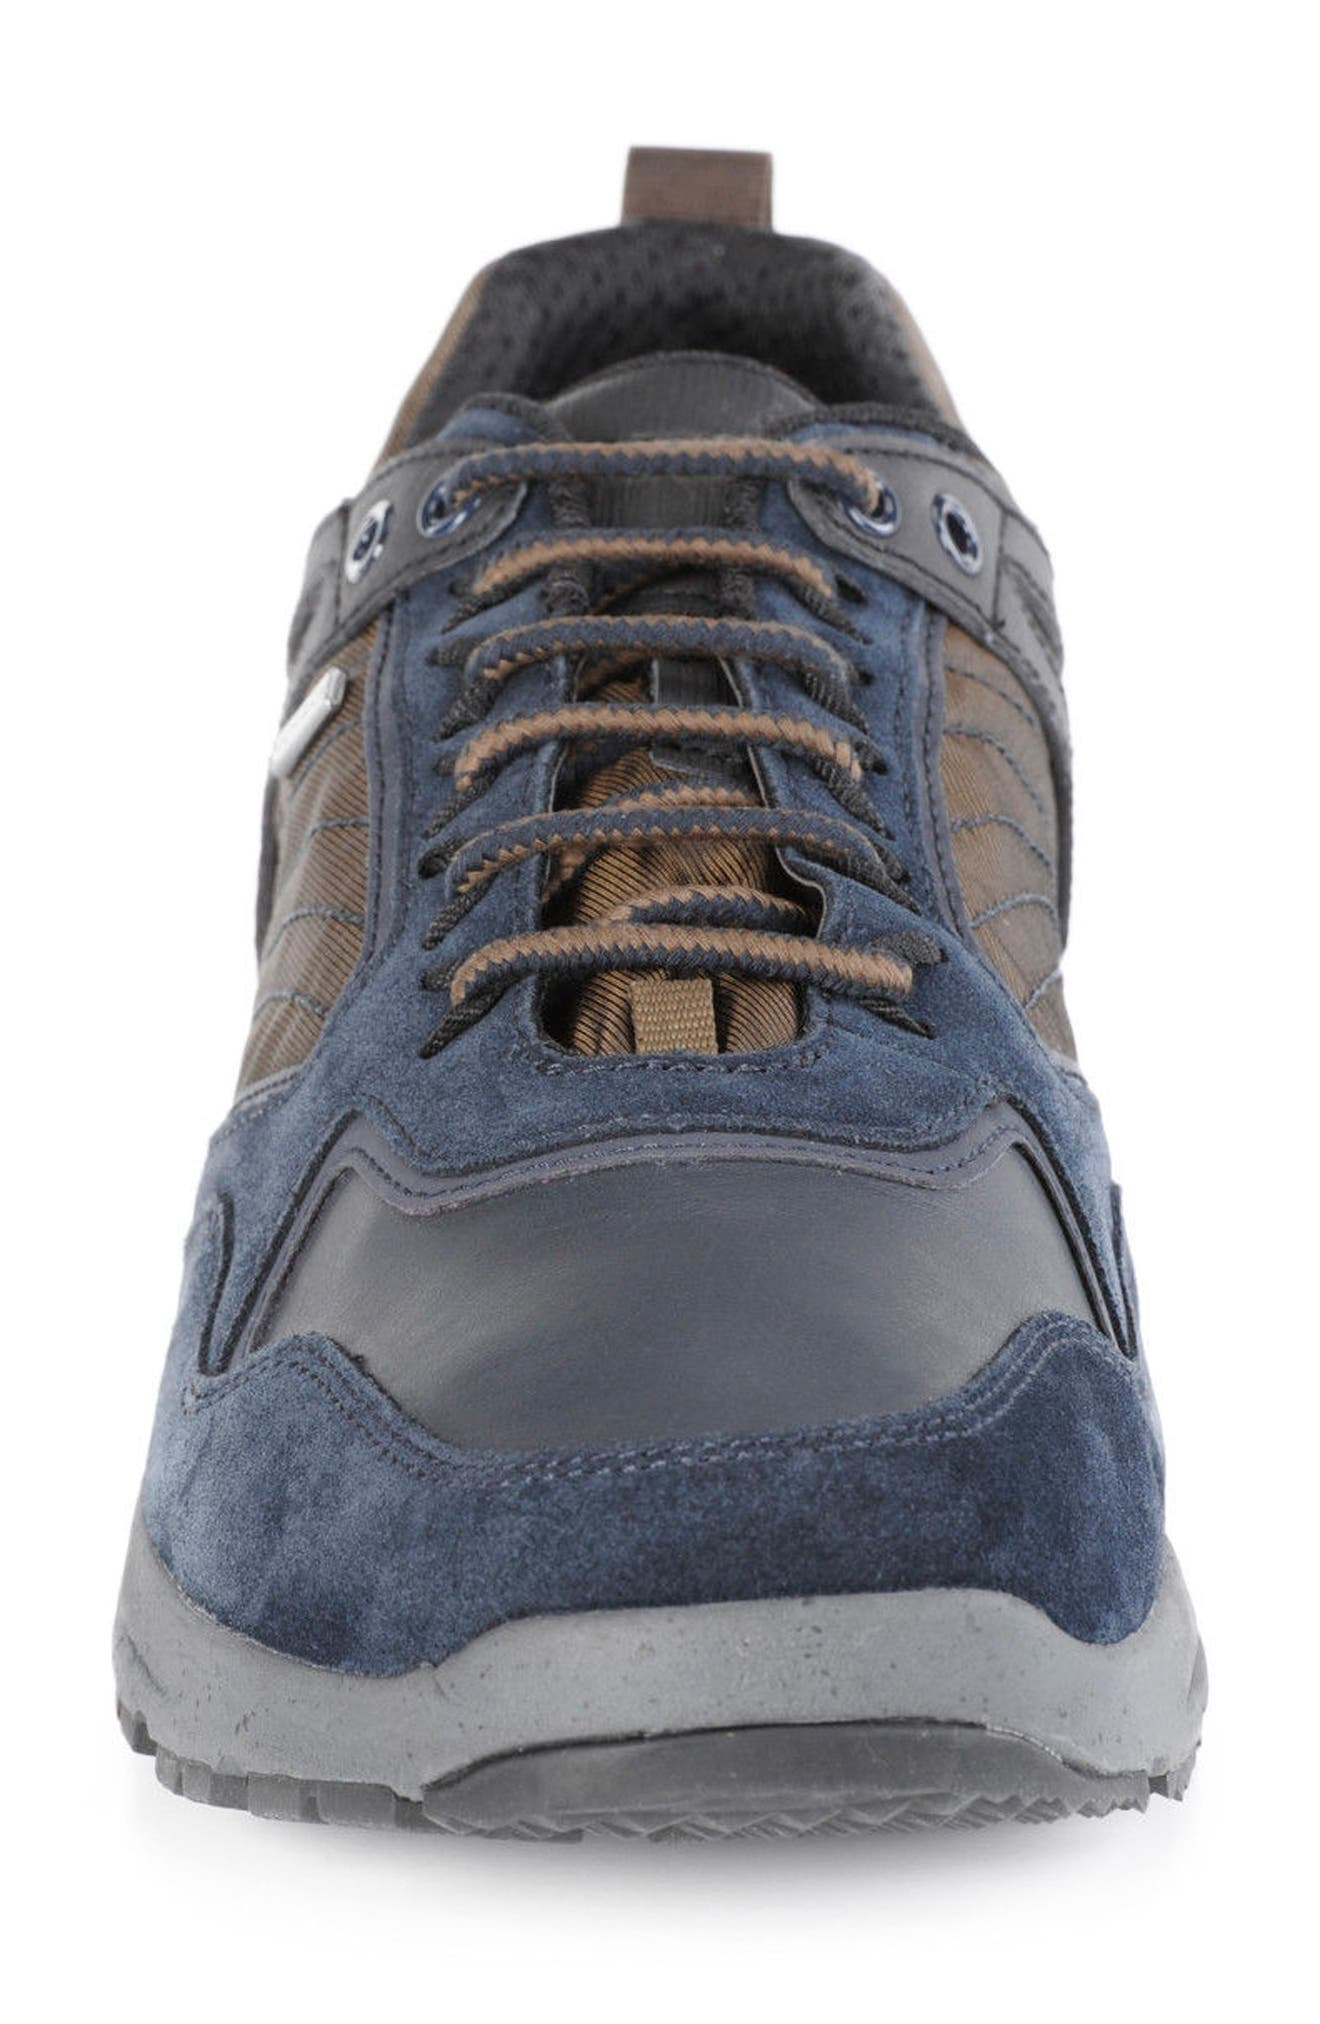 Gegy ABX Waterproof Sneaker,                             Alternate thumbnail 4, color,                             Navy/ Musk